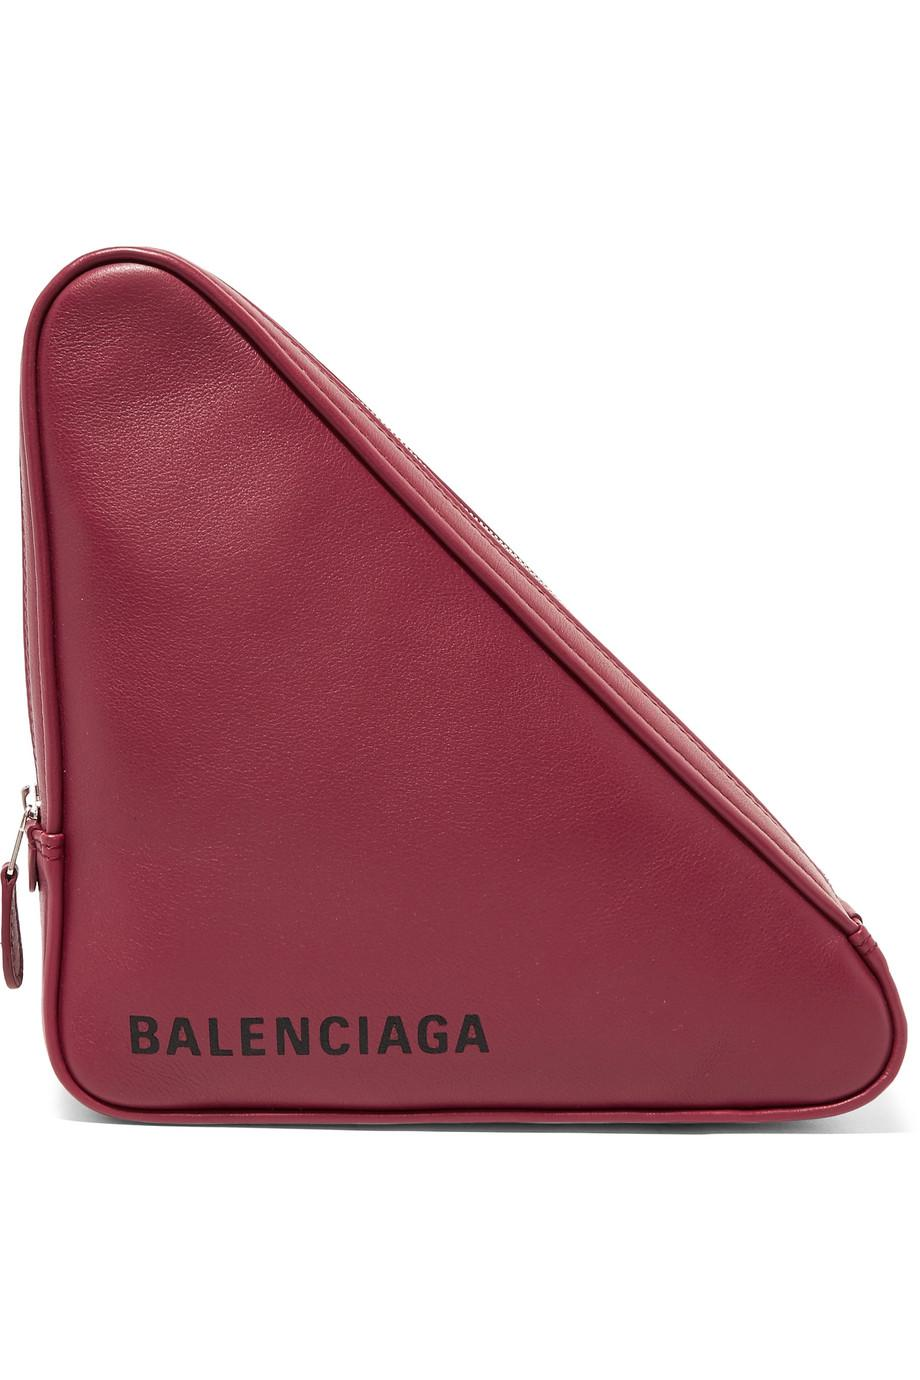 Triangle Printed Leather Pouch - Burgundy Balenciaga